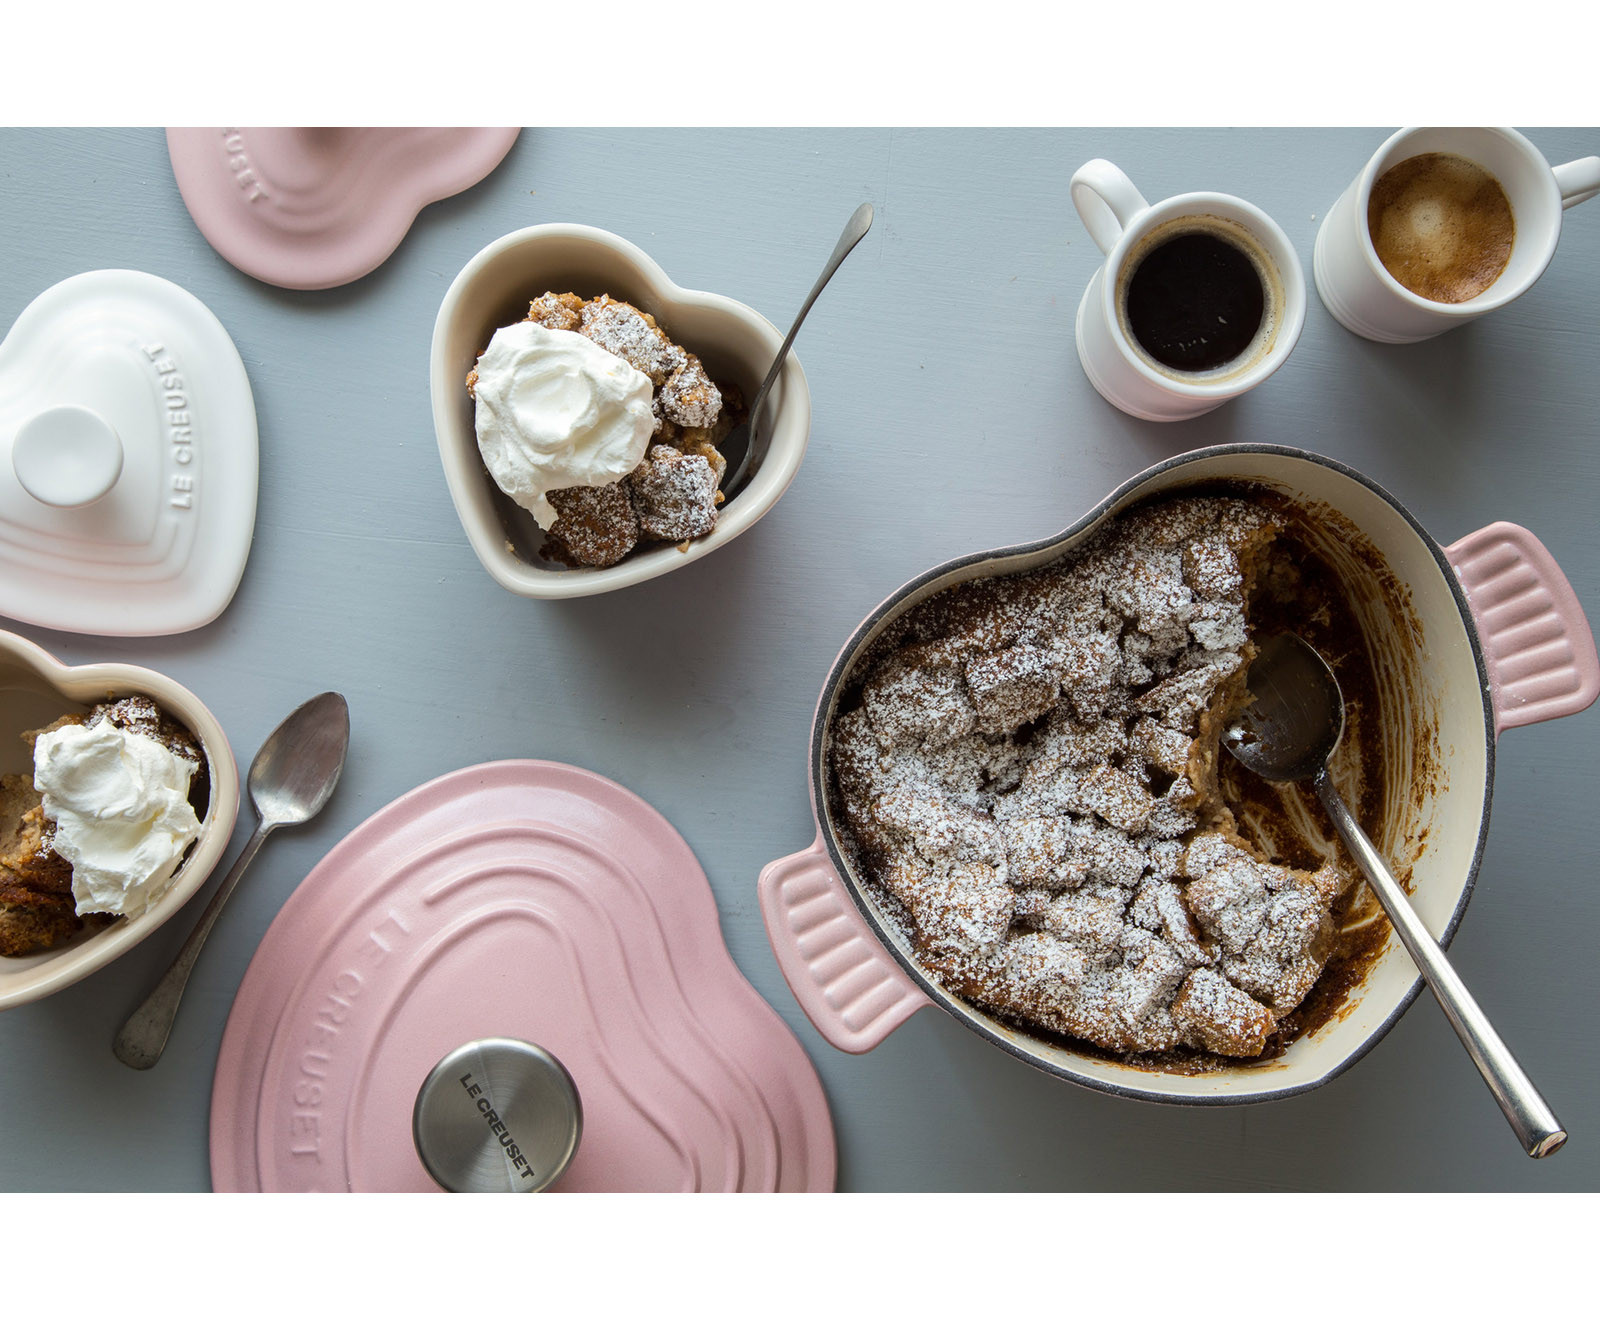 Le Creuset's Heart-Shaped Collection for Valentine's Day Is Giving Us All The Feels